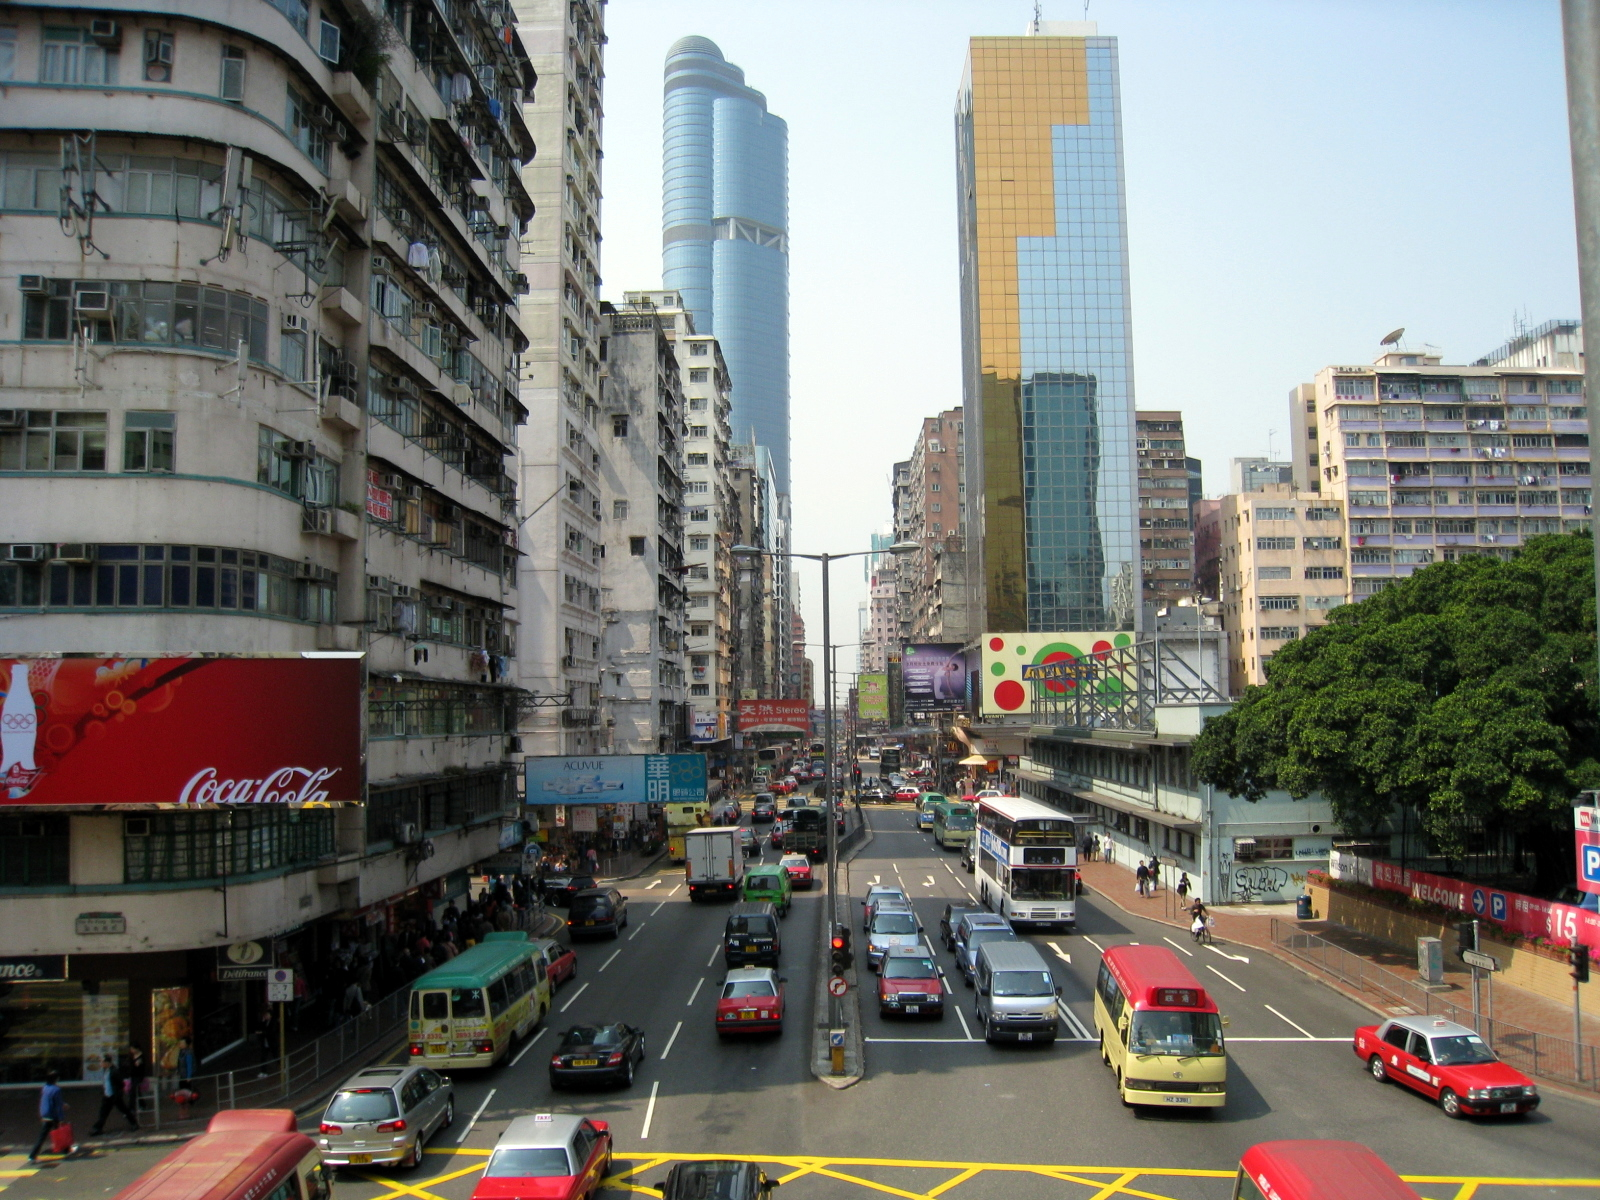 Kok & Design I Koping Ab : Mong Kok  Wikipedia, the free encyclopedia